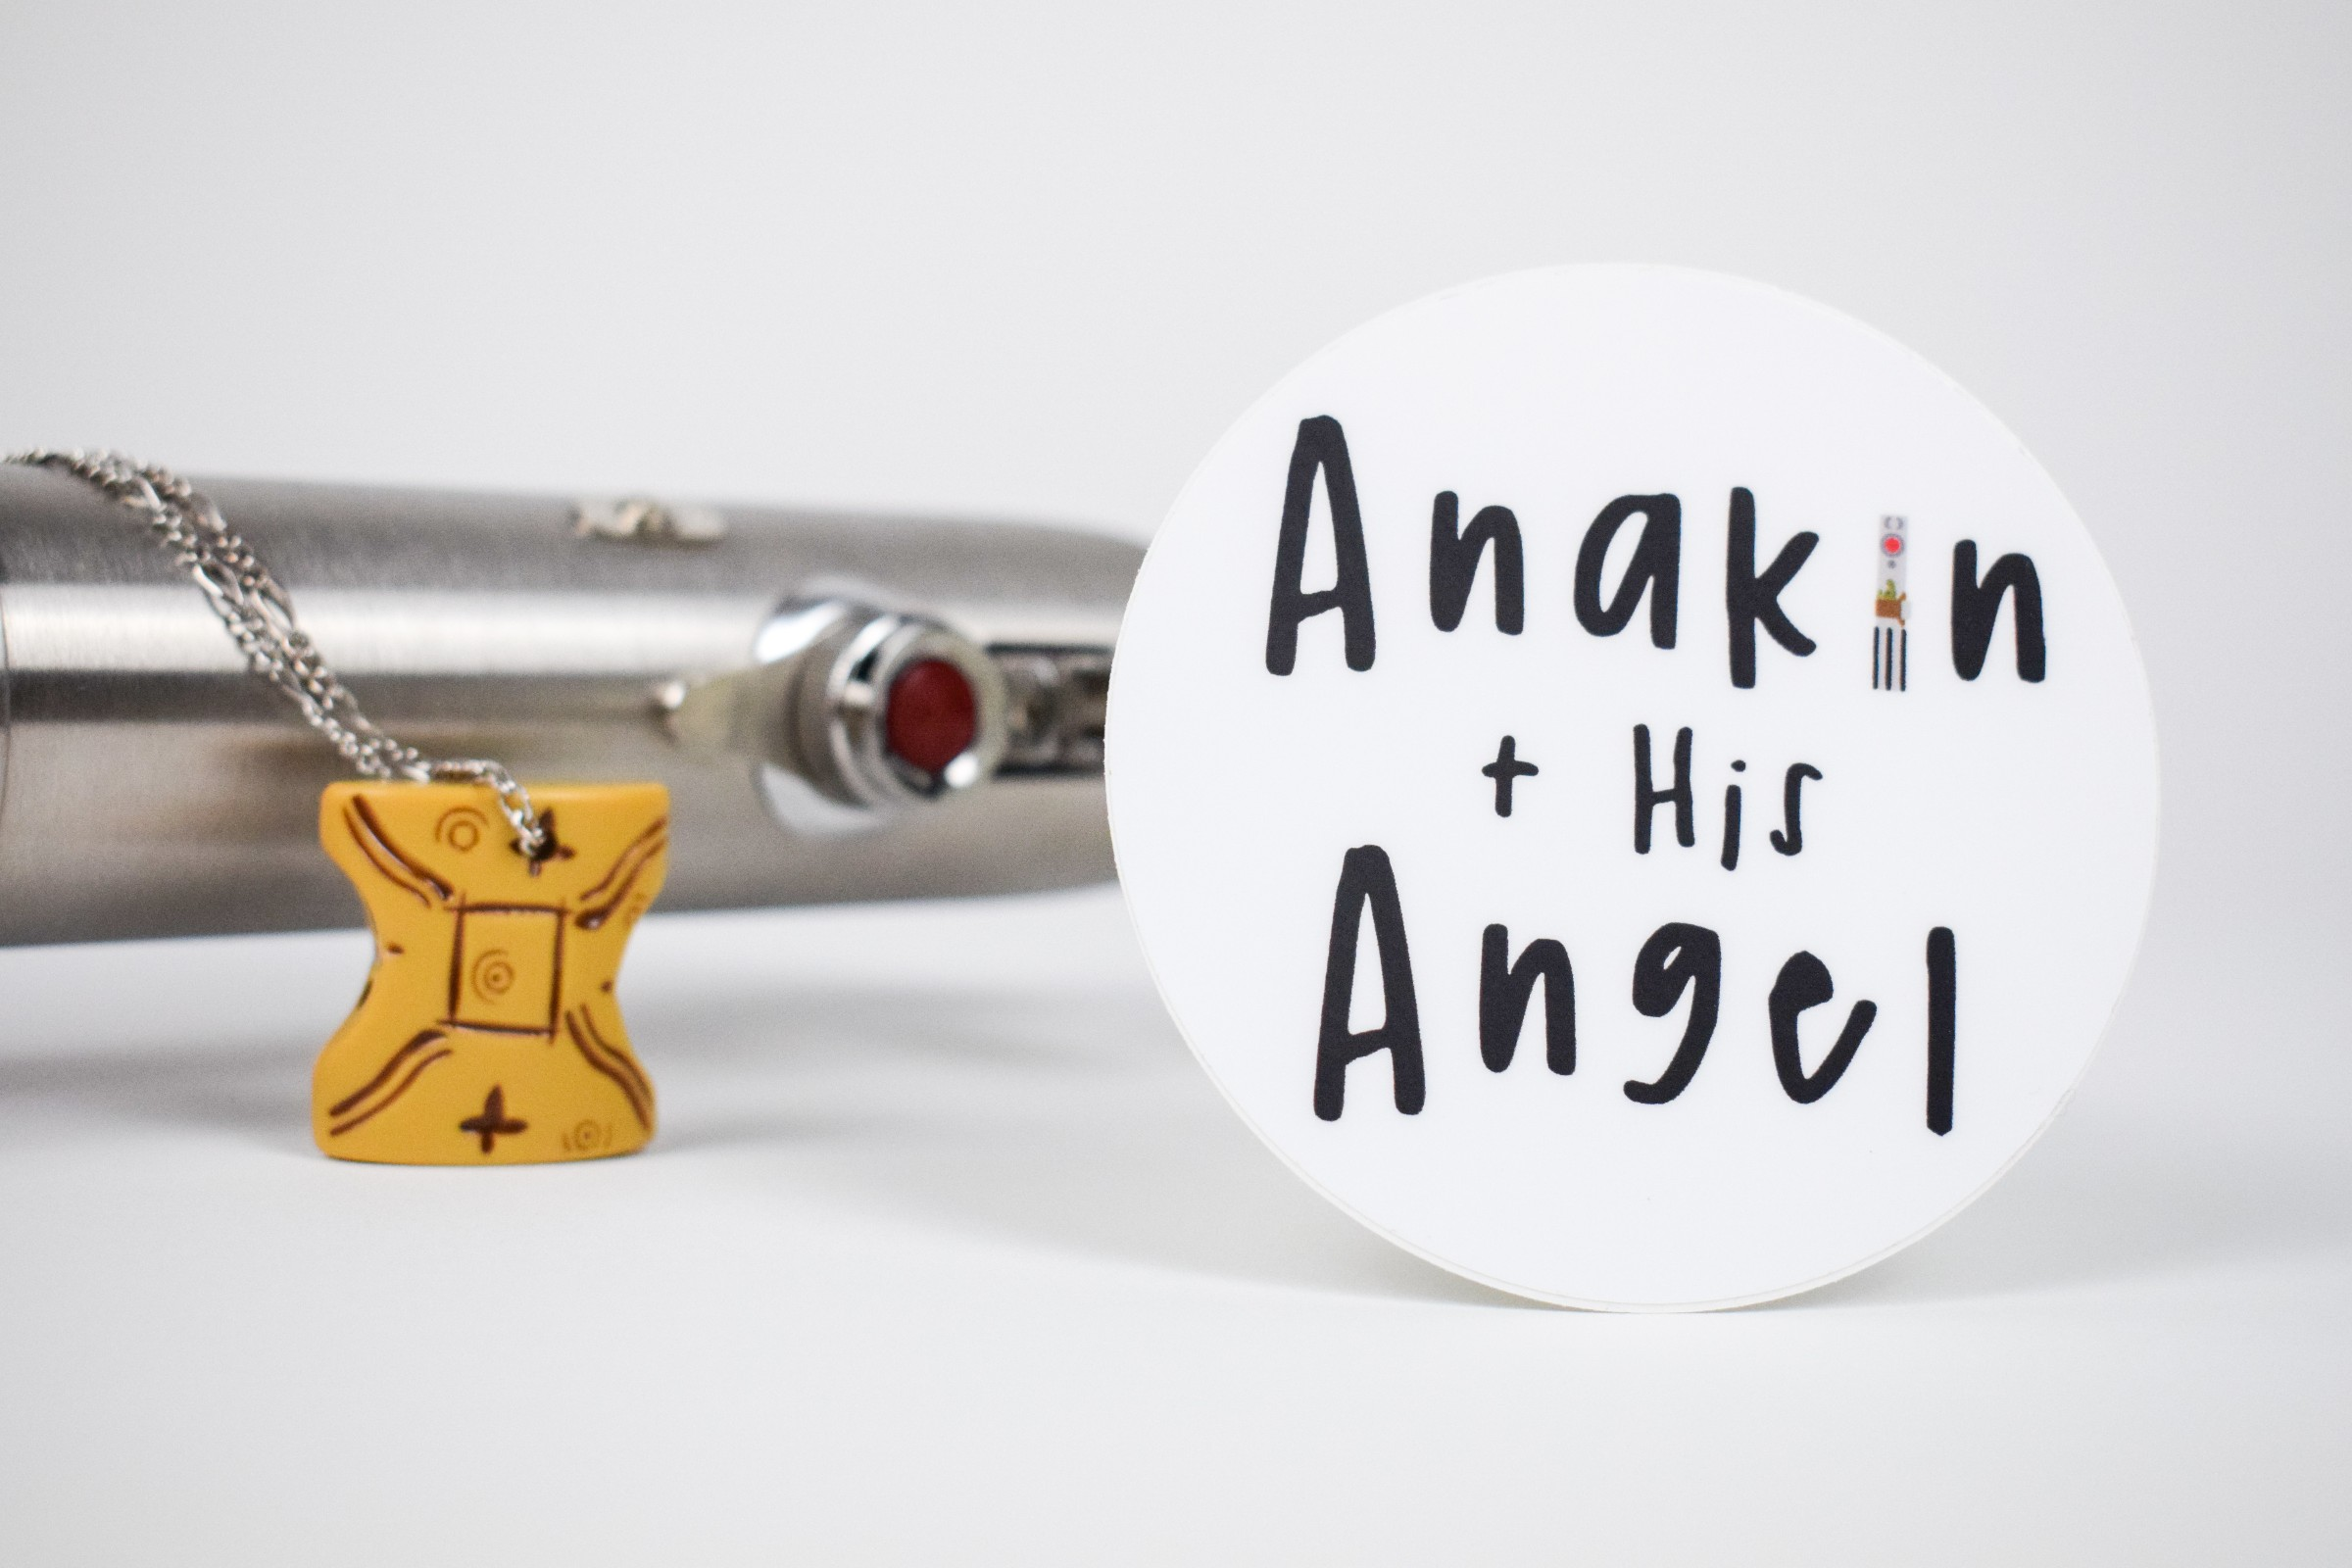 20 Years of Blogging - New Merch & Giveaways | Anakin and His Angel